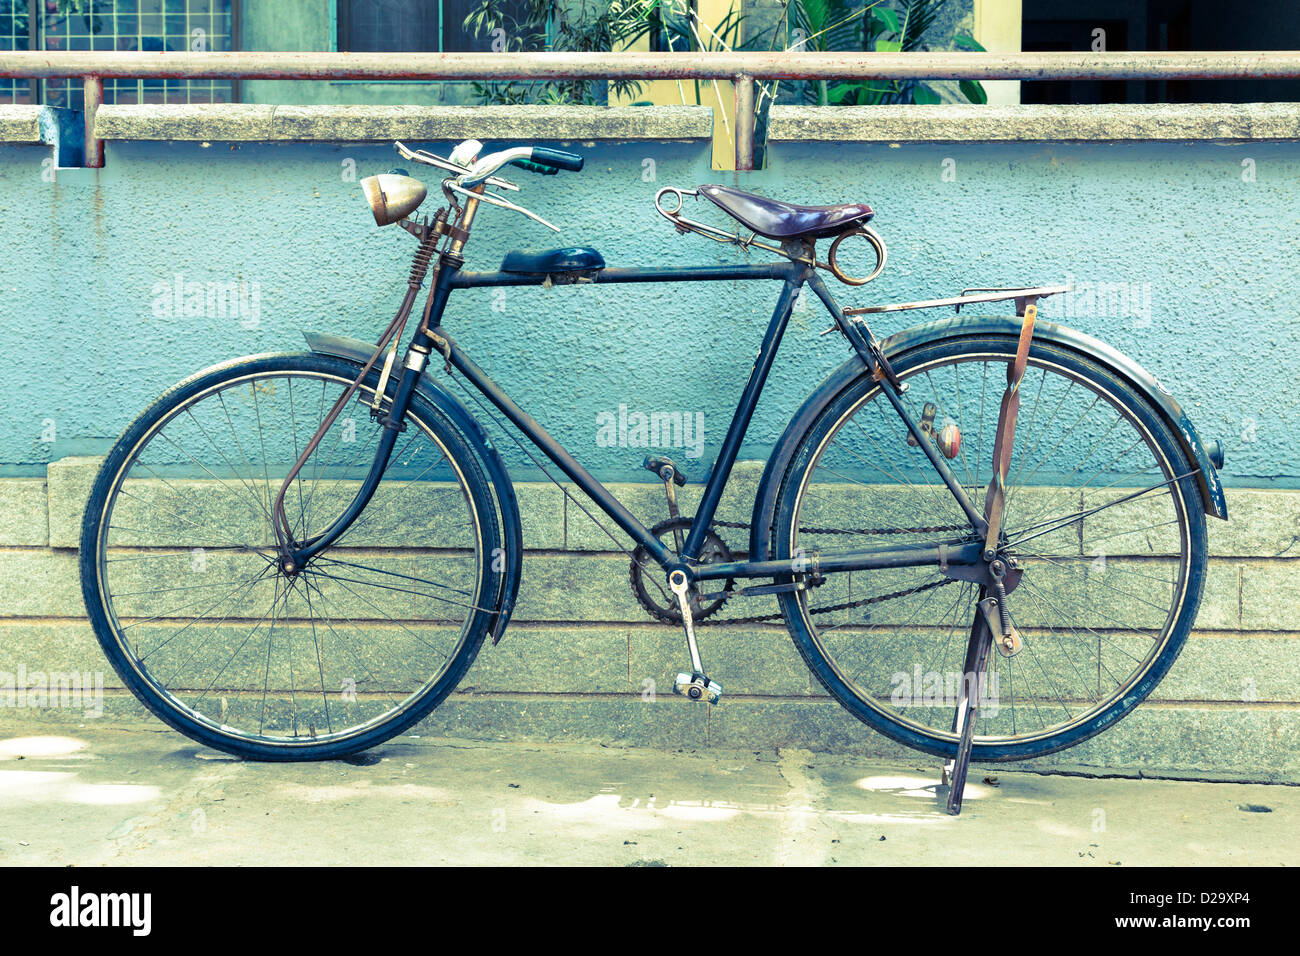 Vintage retro bicycle in India, cross-processed toned image - Stock Image